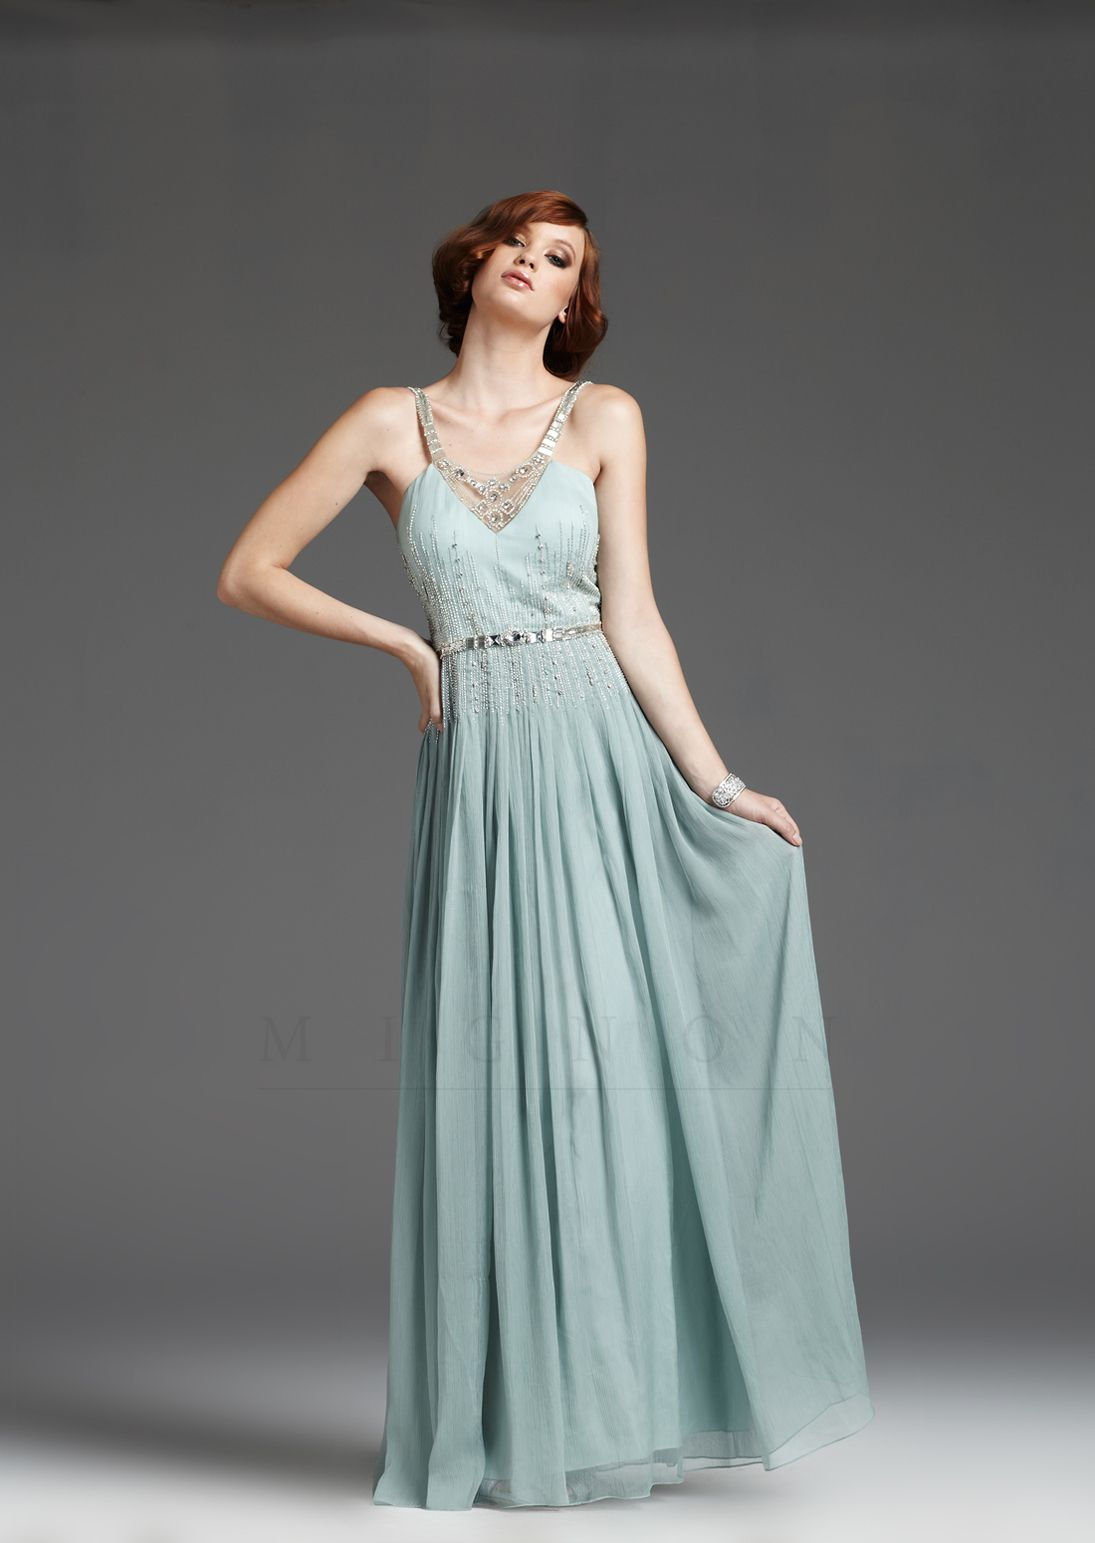 9238b0ad8a233 Seamist 1930 s Style Grecian Silver Beaded Elegant Prom Dress - Unique  Vintage - Prom dresses